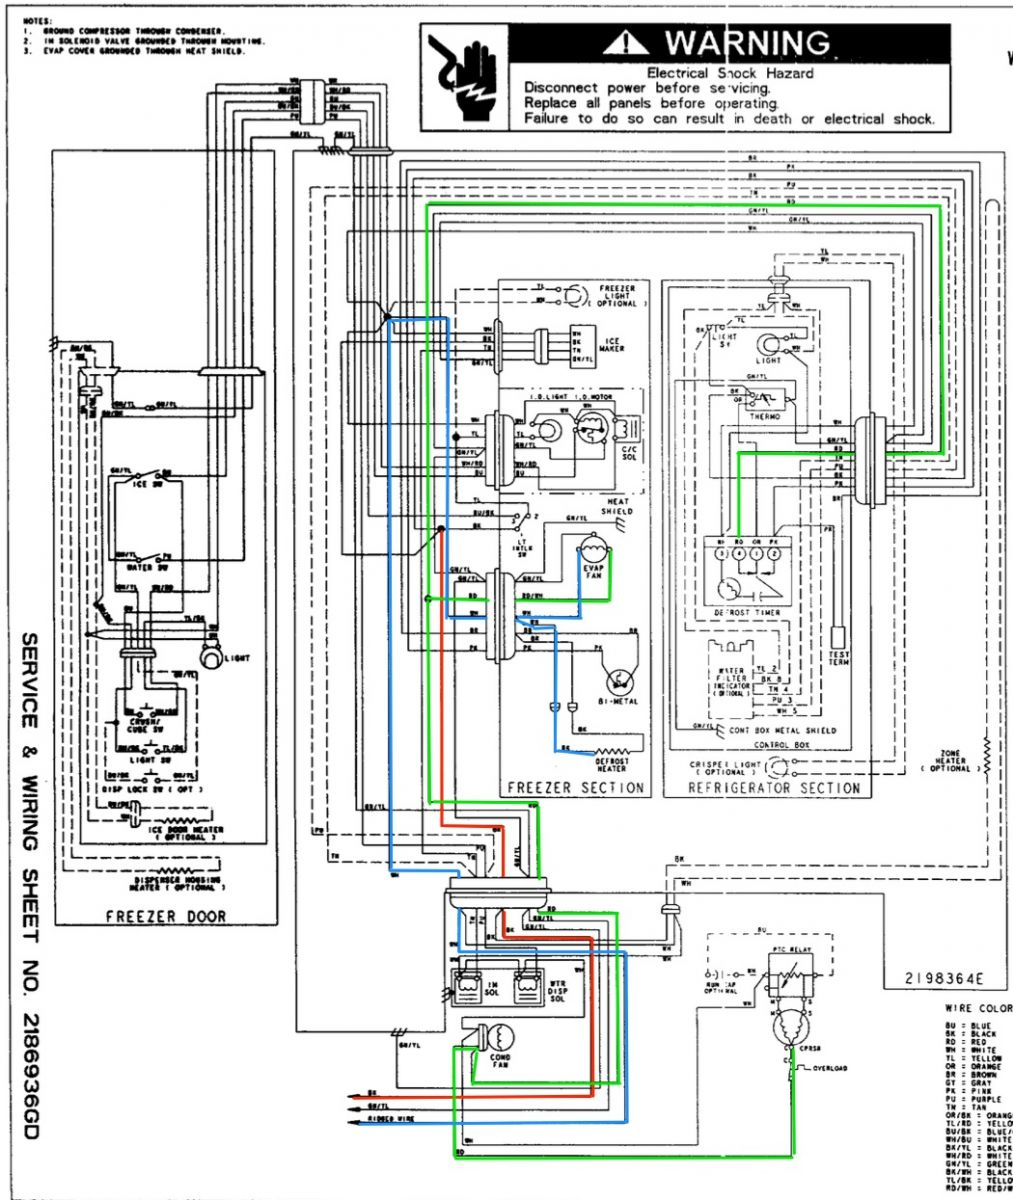 Whirlpool Ed25rfxfw01 Refrigerator Wiring Diagram - The Appliantology Gallery